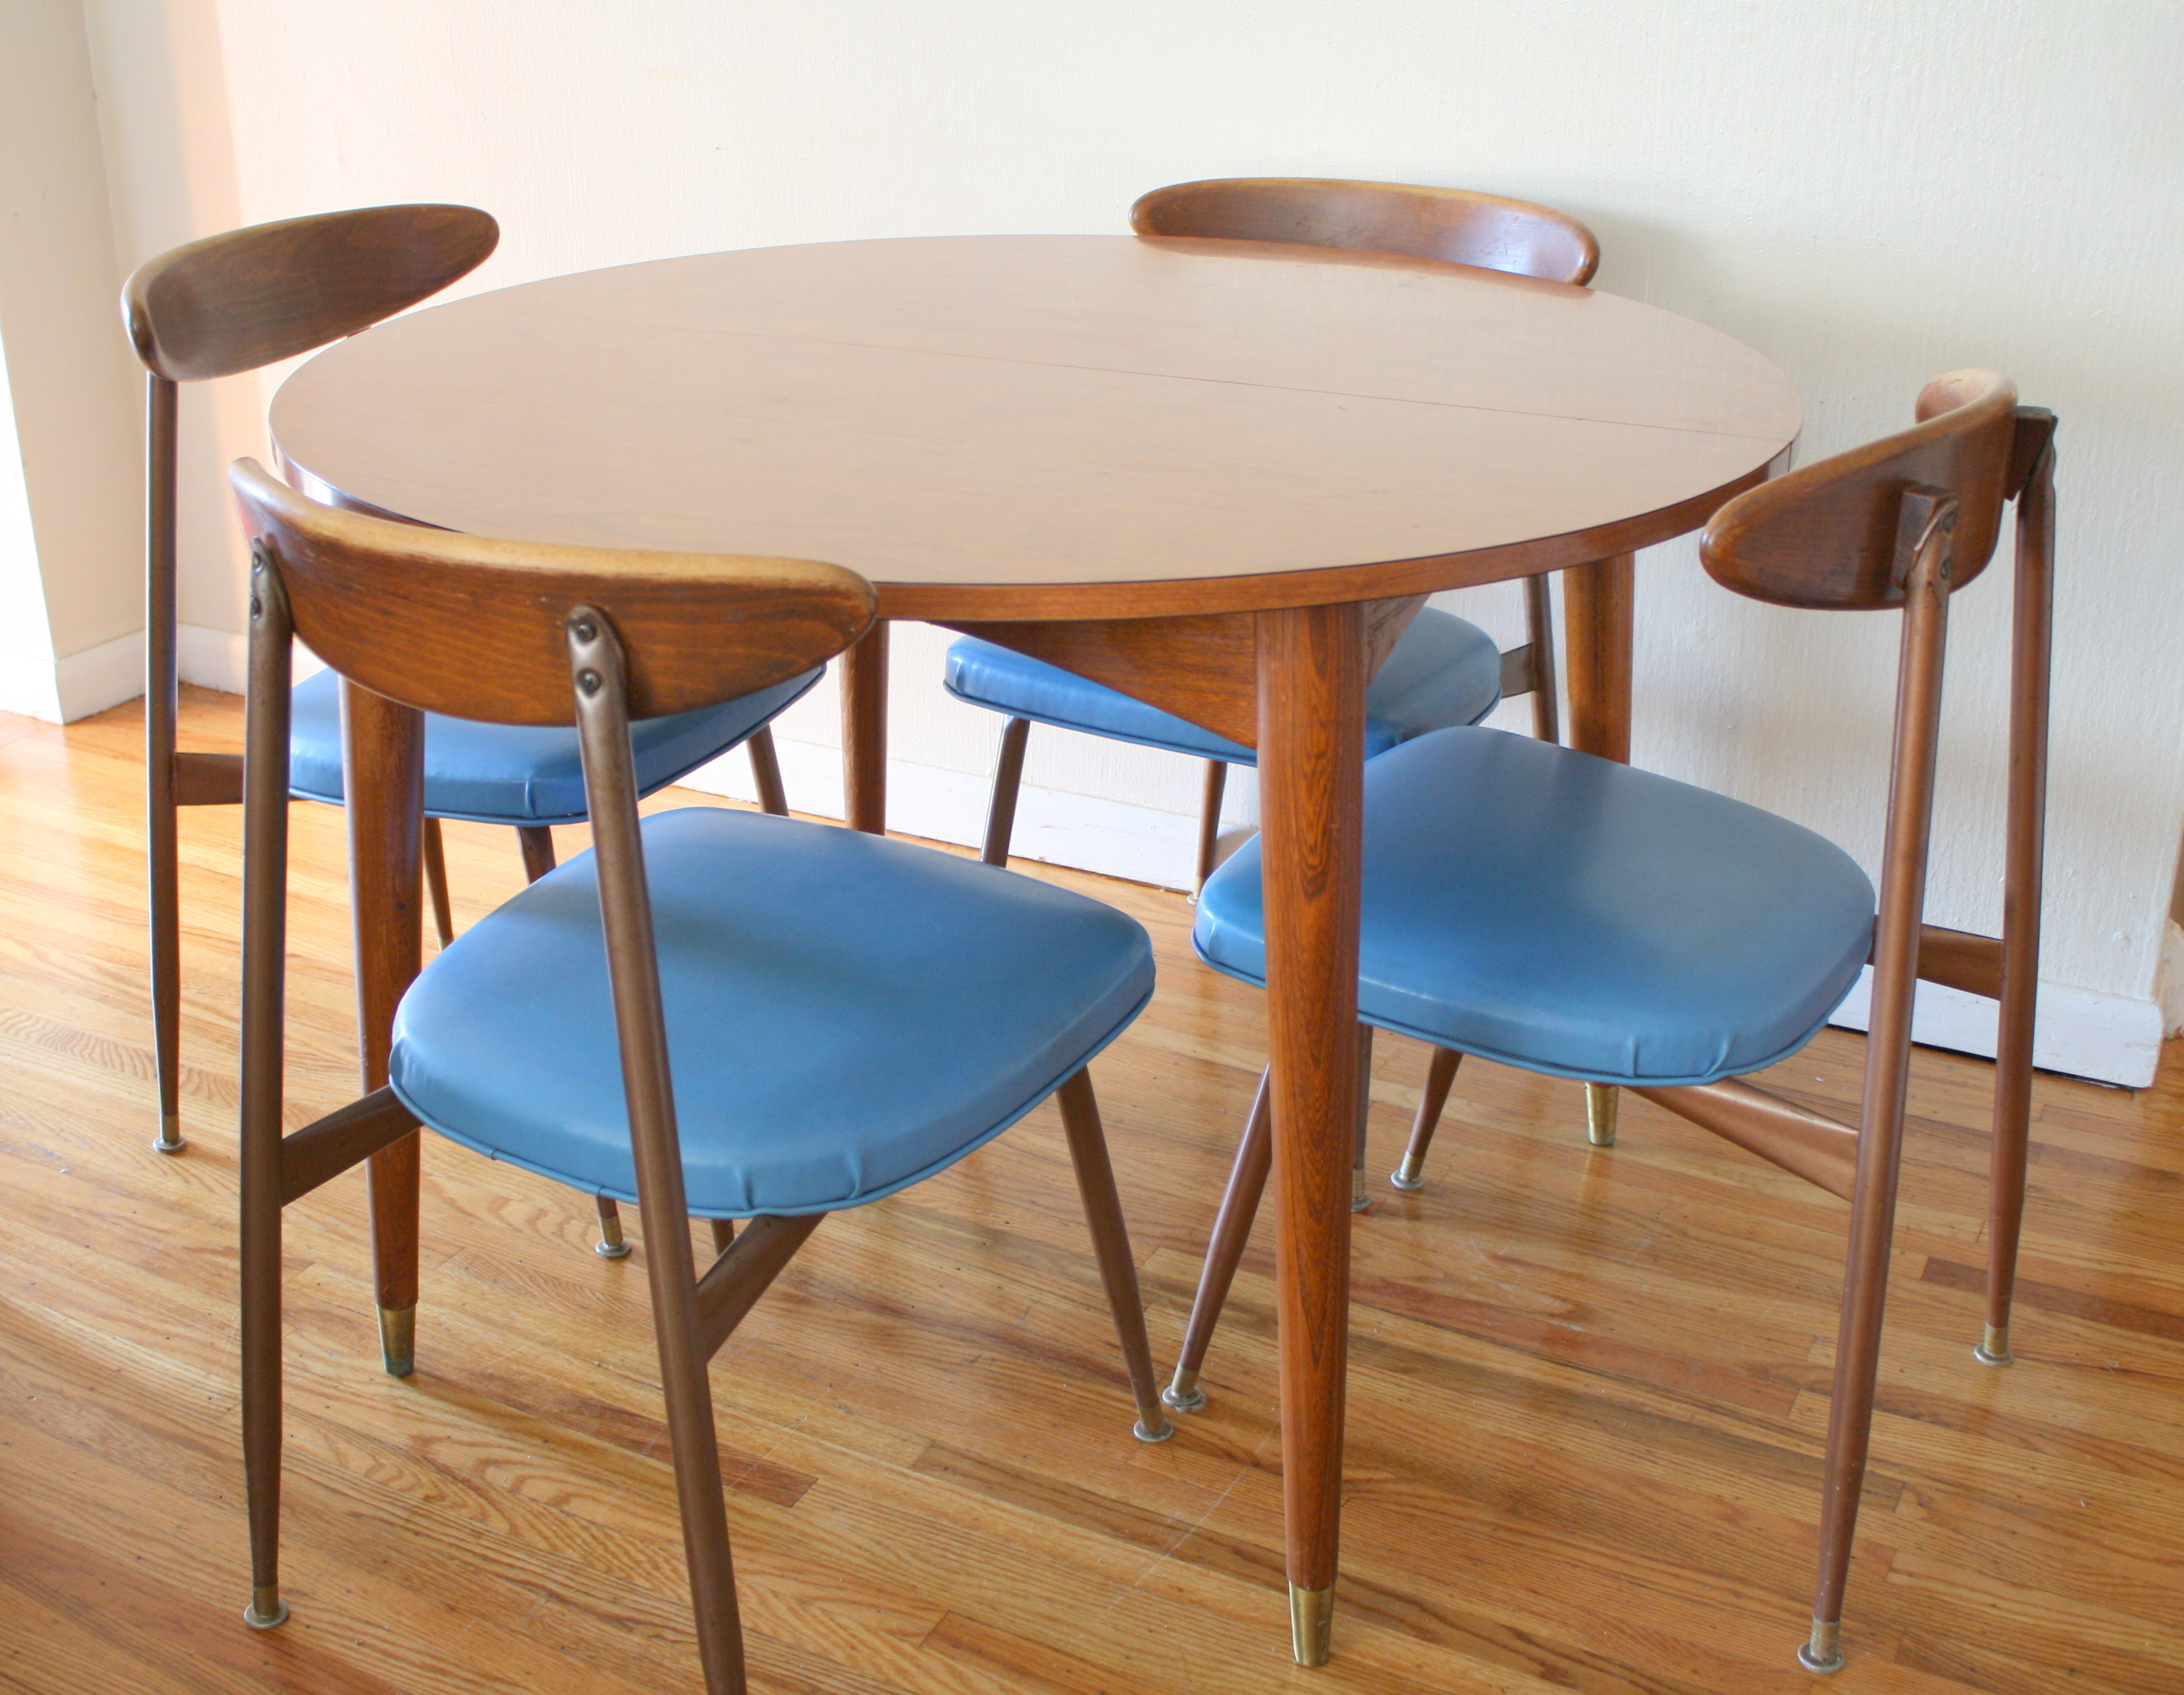 chairs for kitchen table play ikea mid century modern viko dining picked vintage